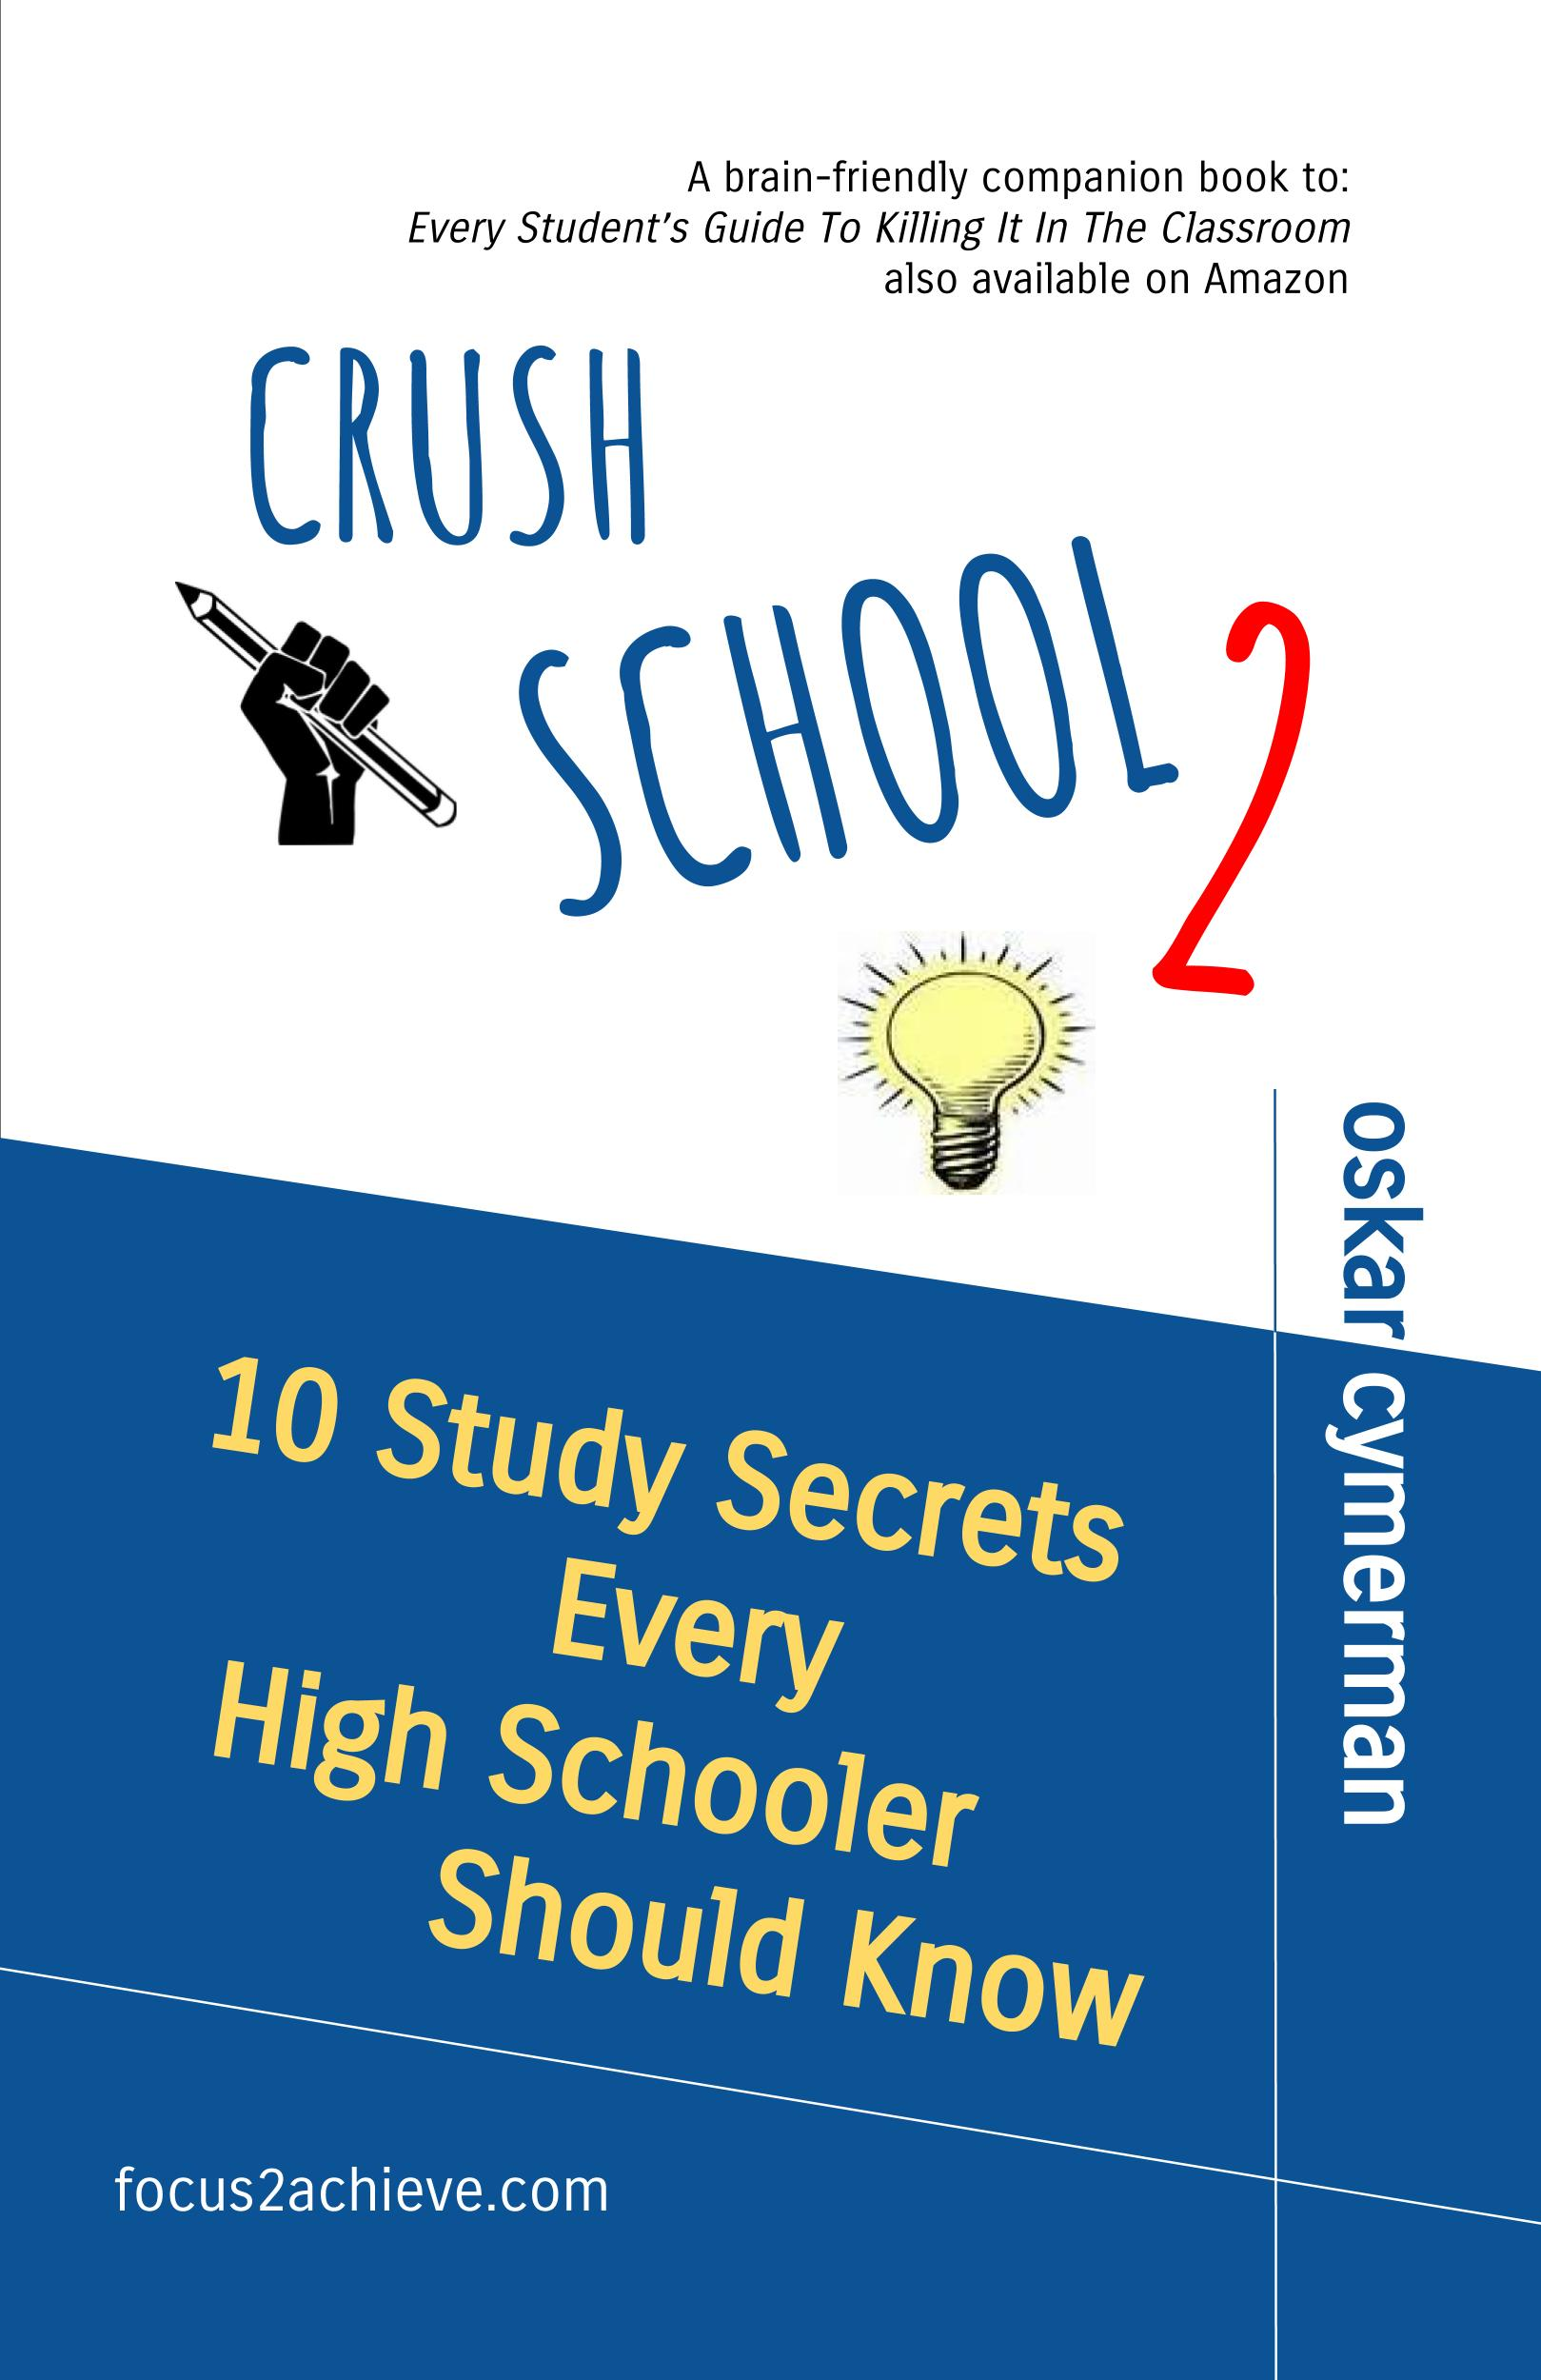 CRUSH SCHOOL 2 FREE EBOOK.jpg